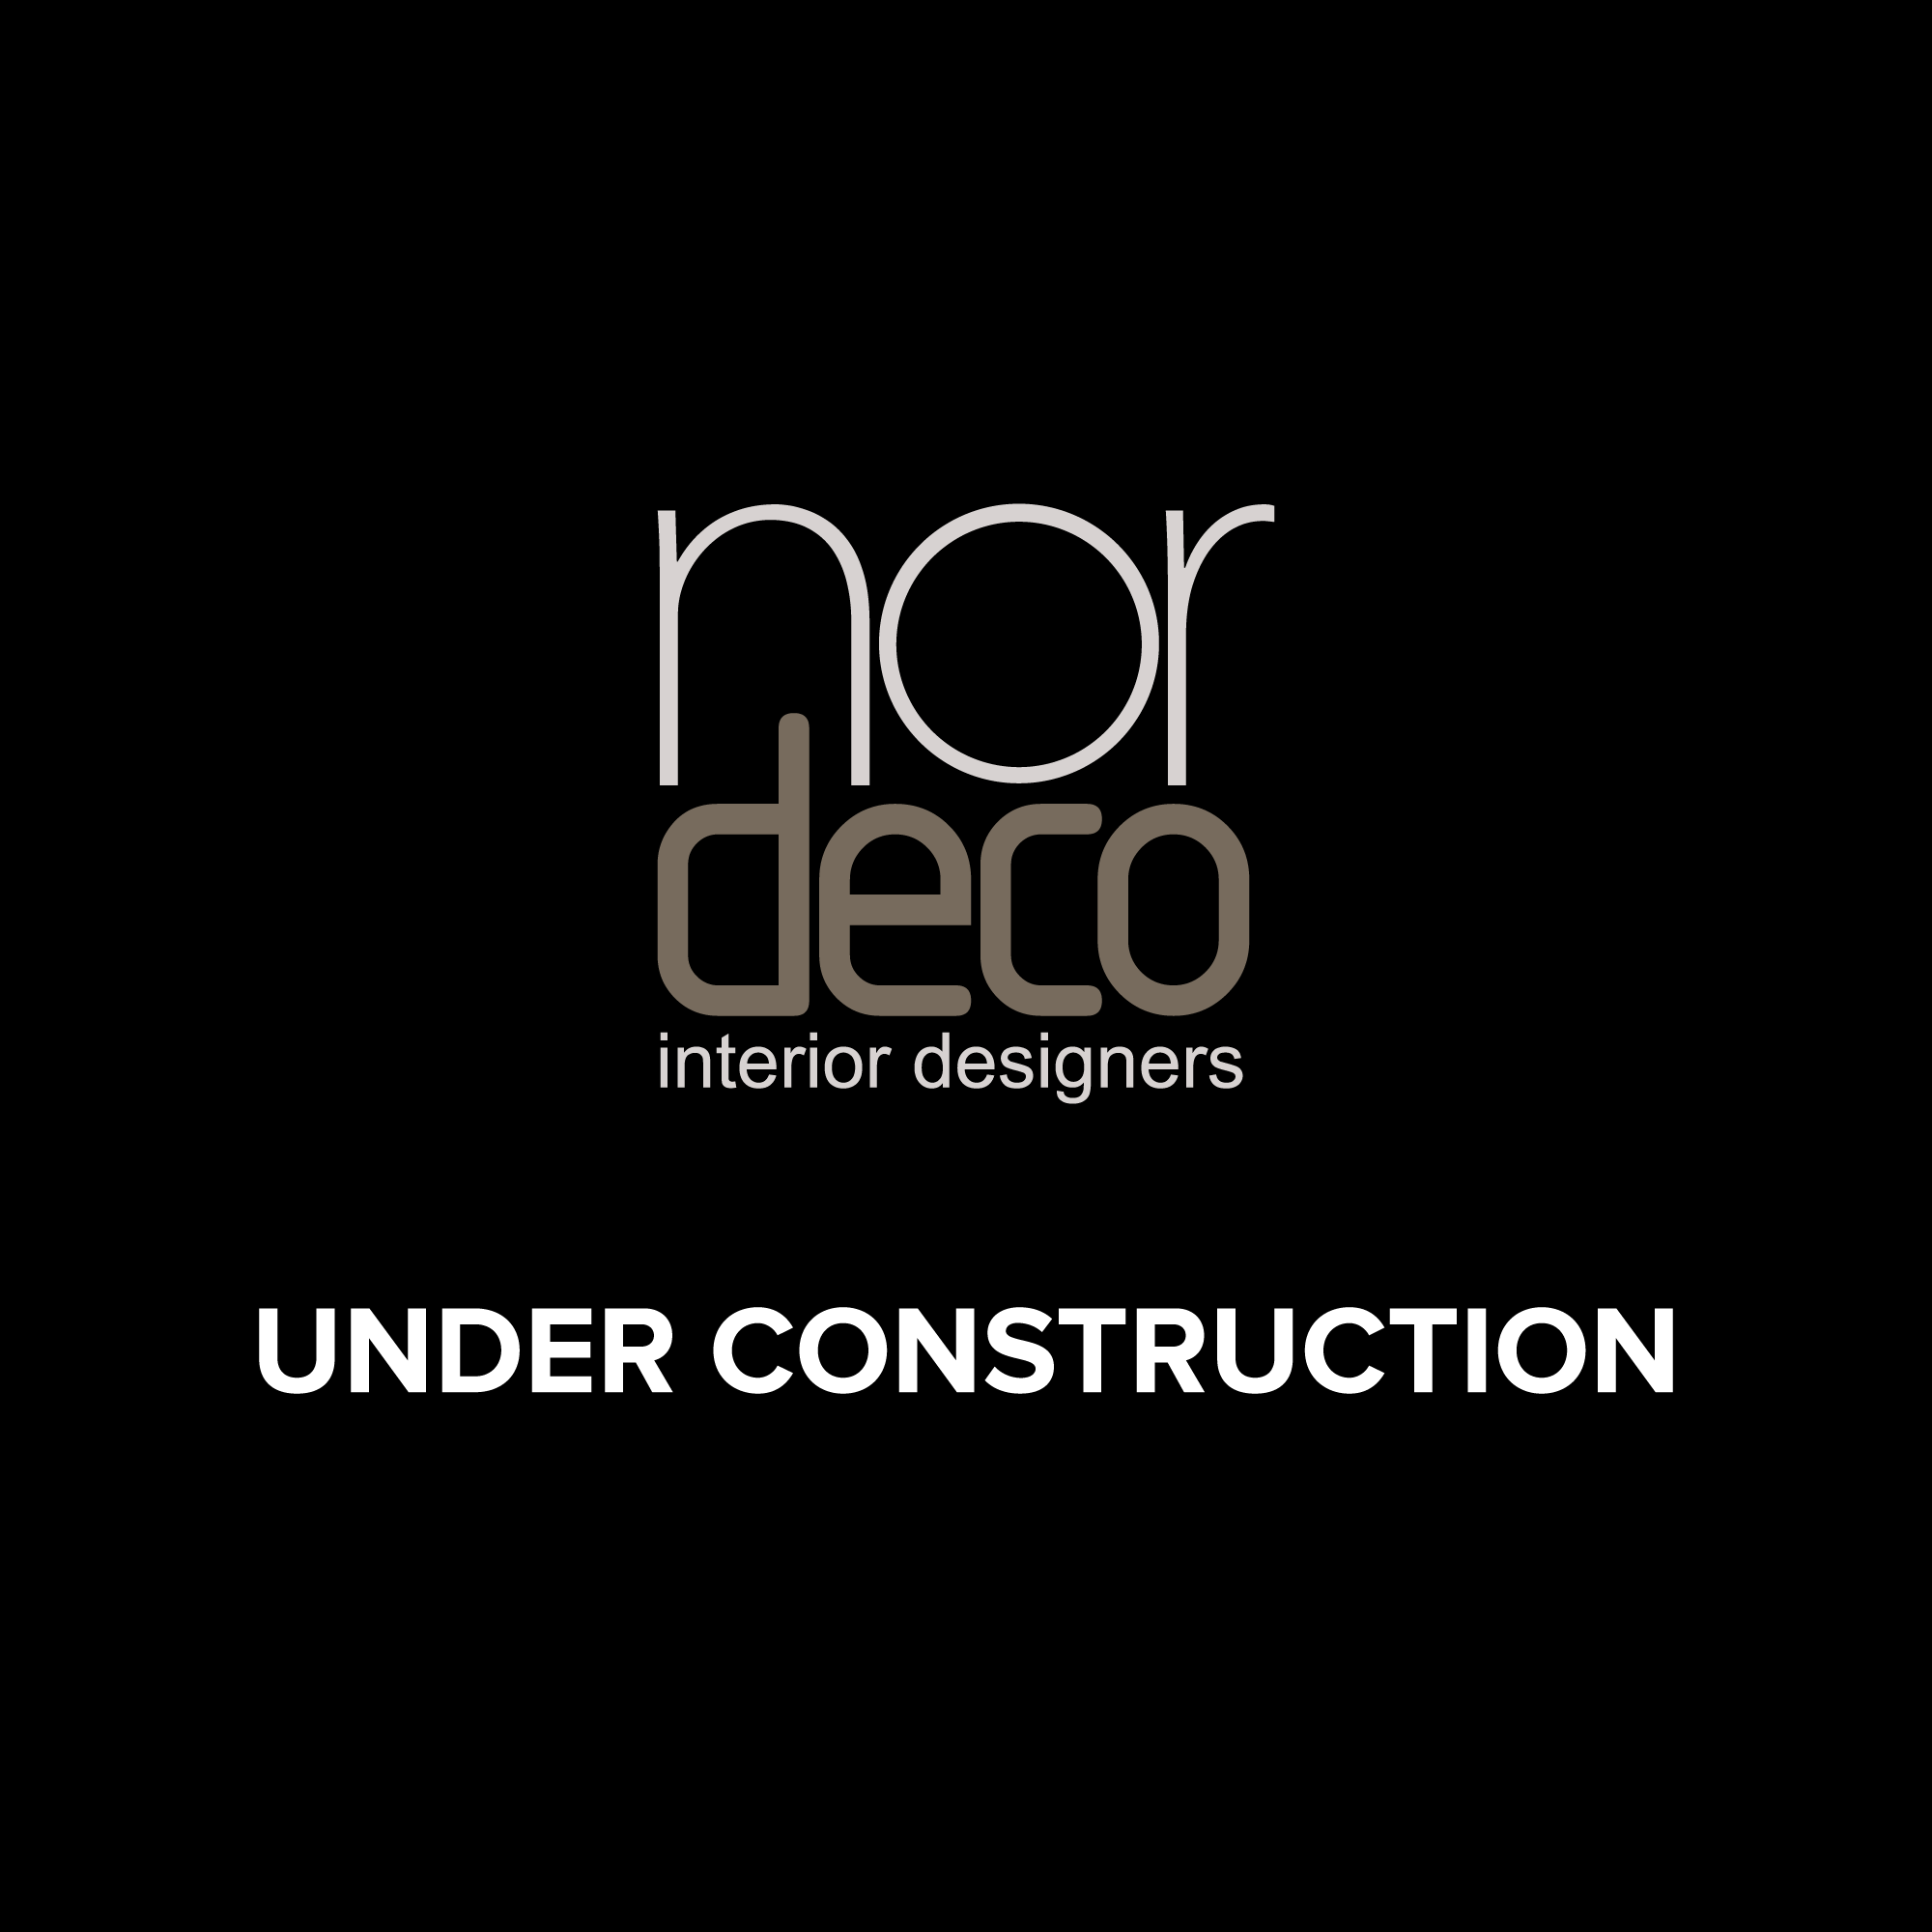 nordeco is coming soon